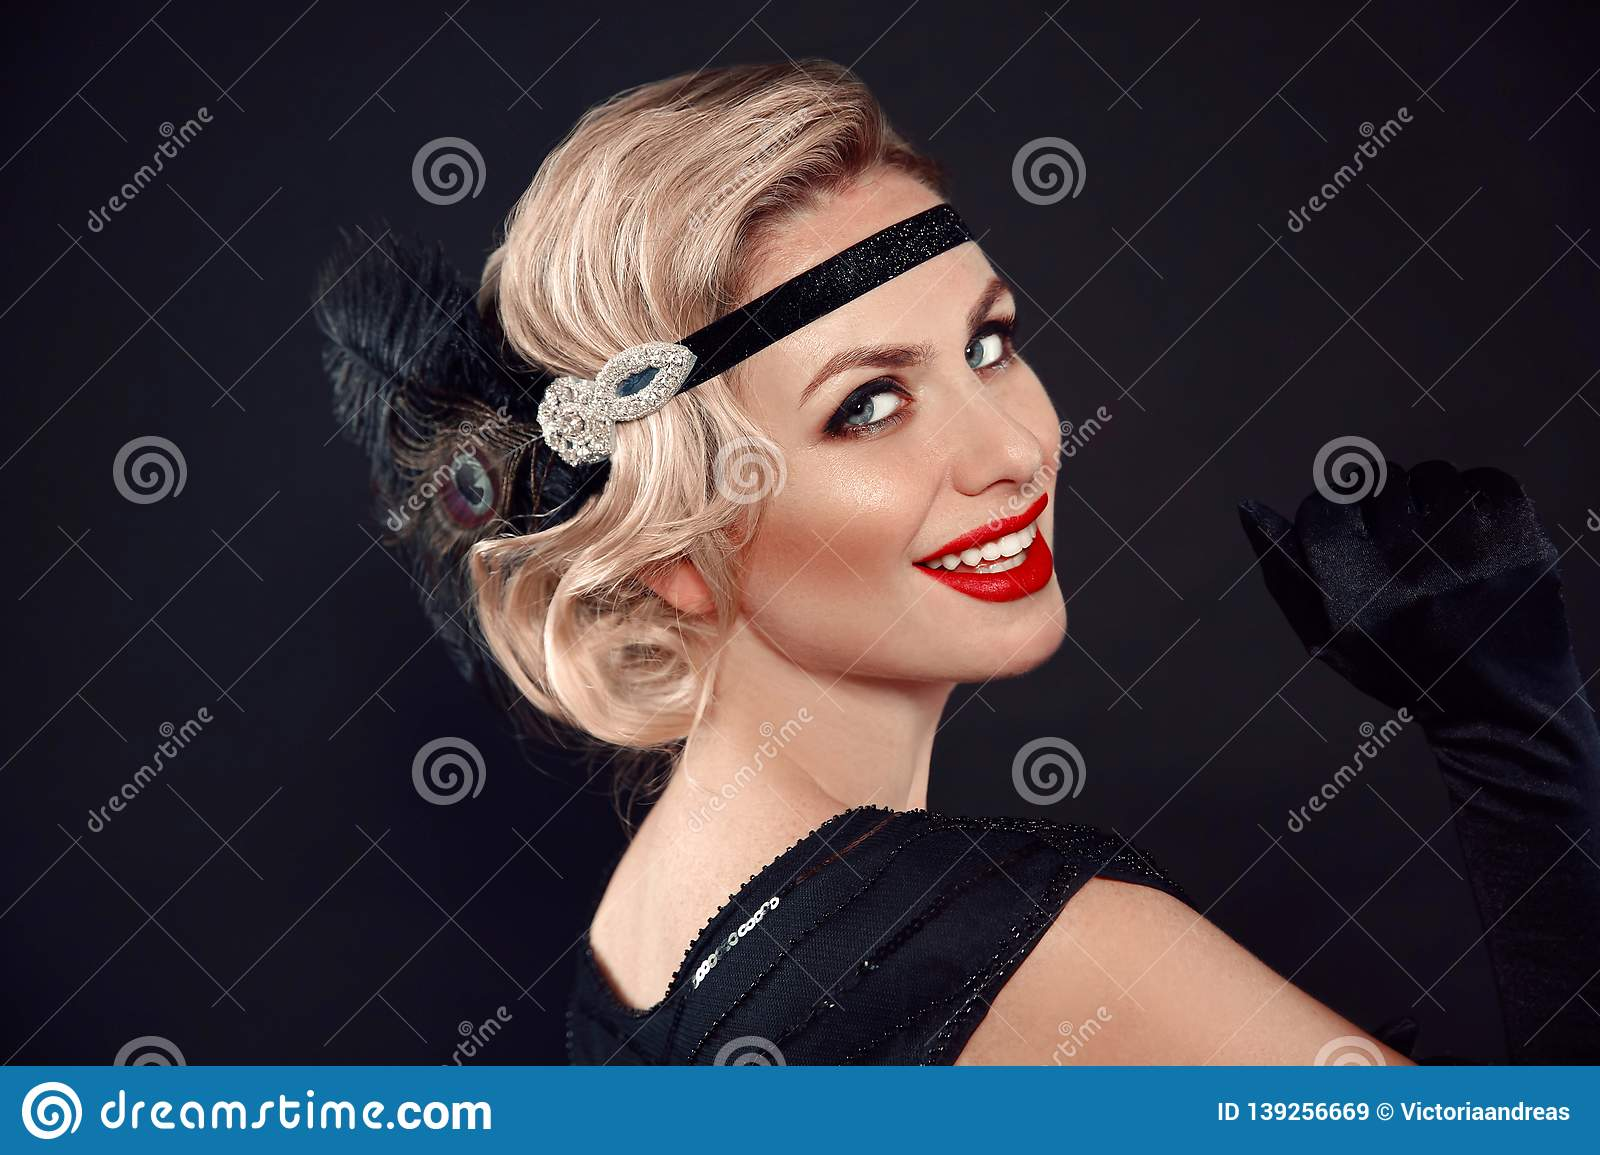 Blonde wavy hairstyle. Hollywood red lips makeup. Curly hair style